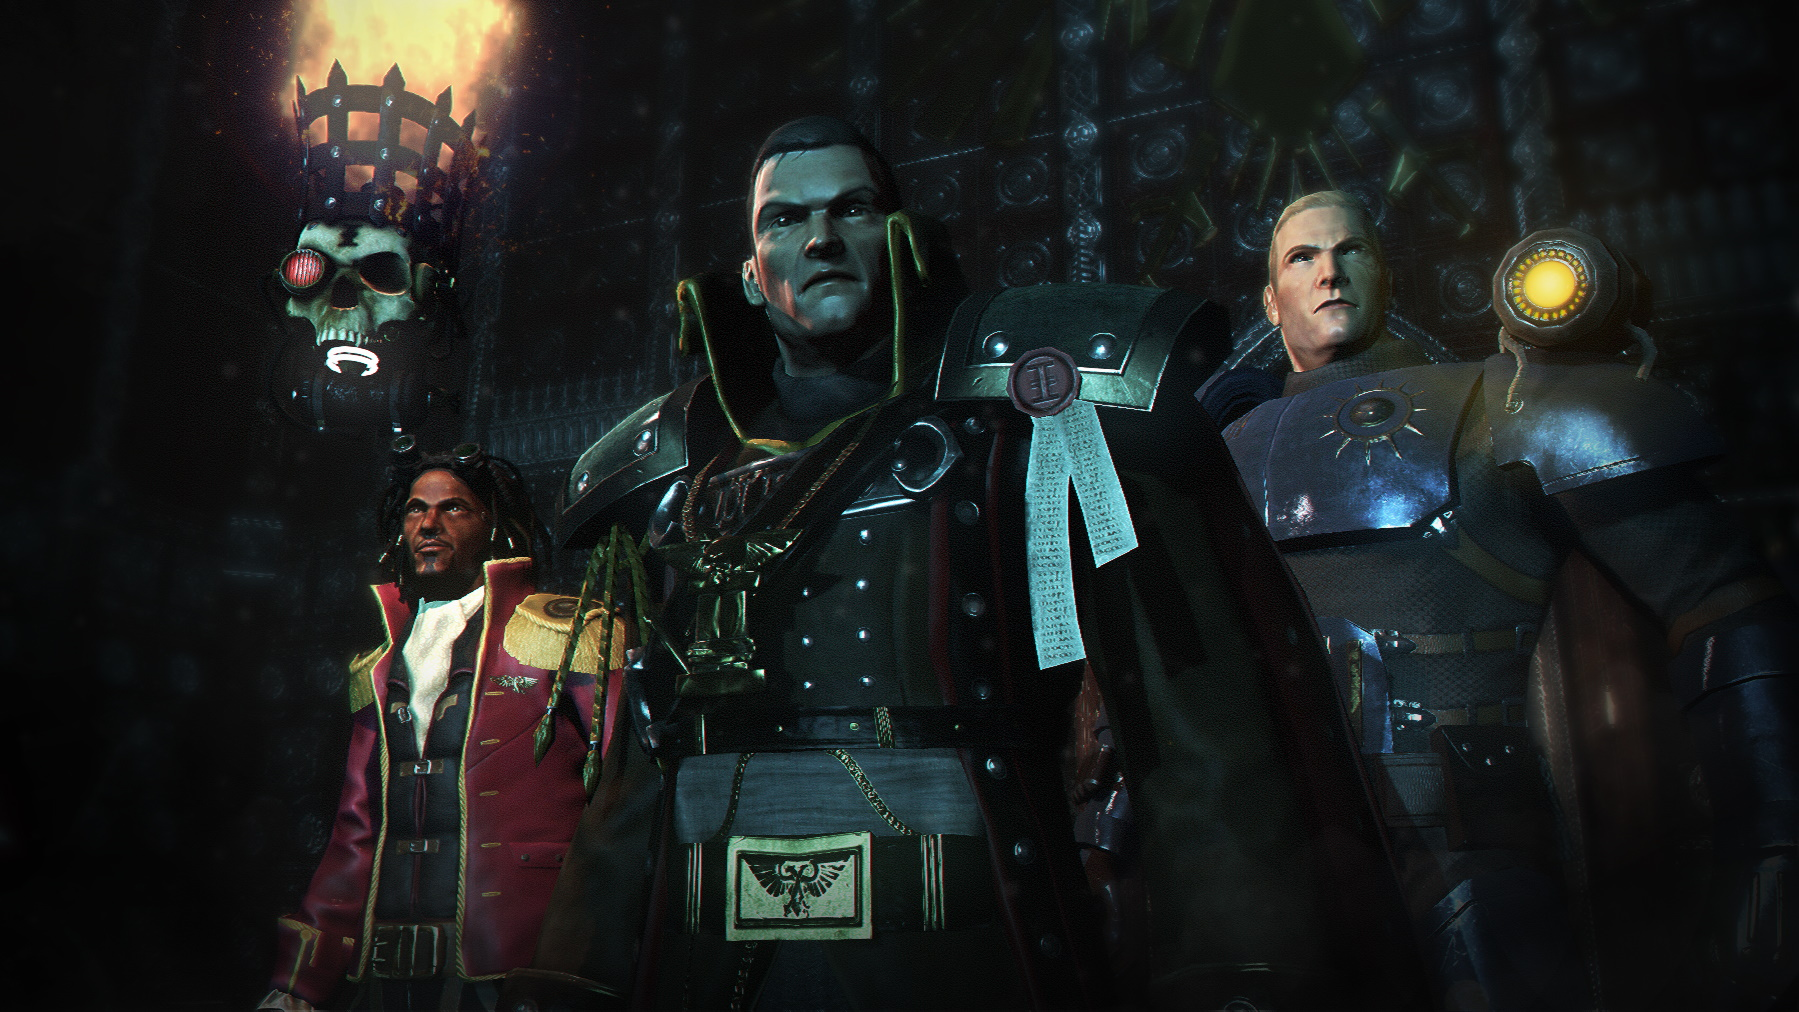 A Warhammer 40,000 live-action television series is in the works | PC Gamer